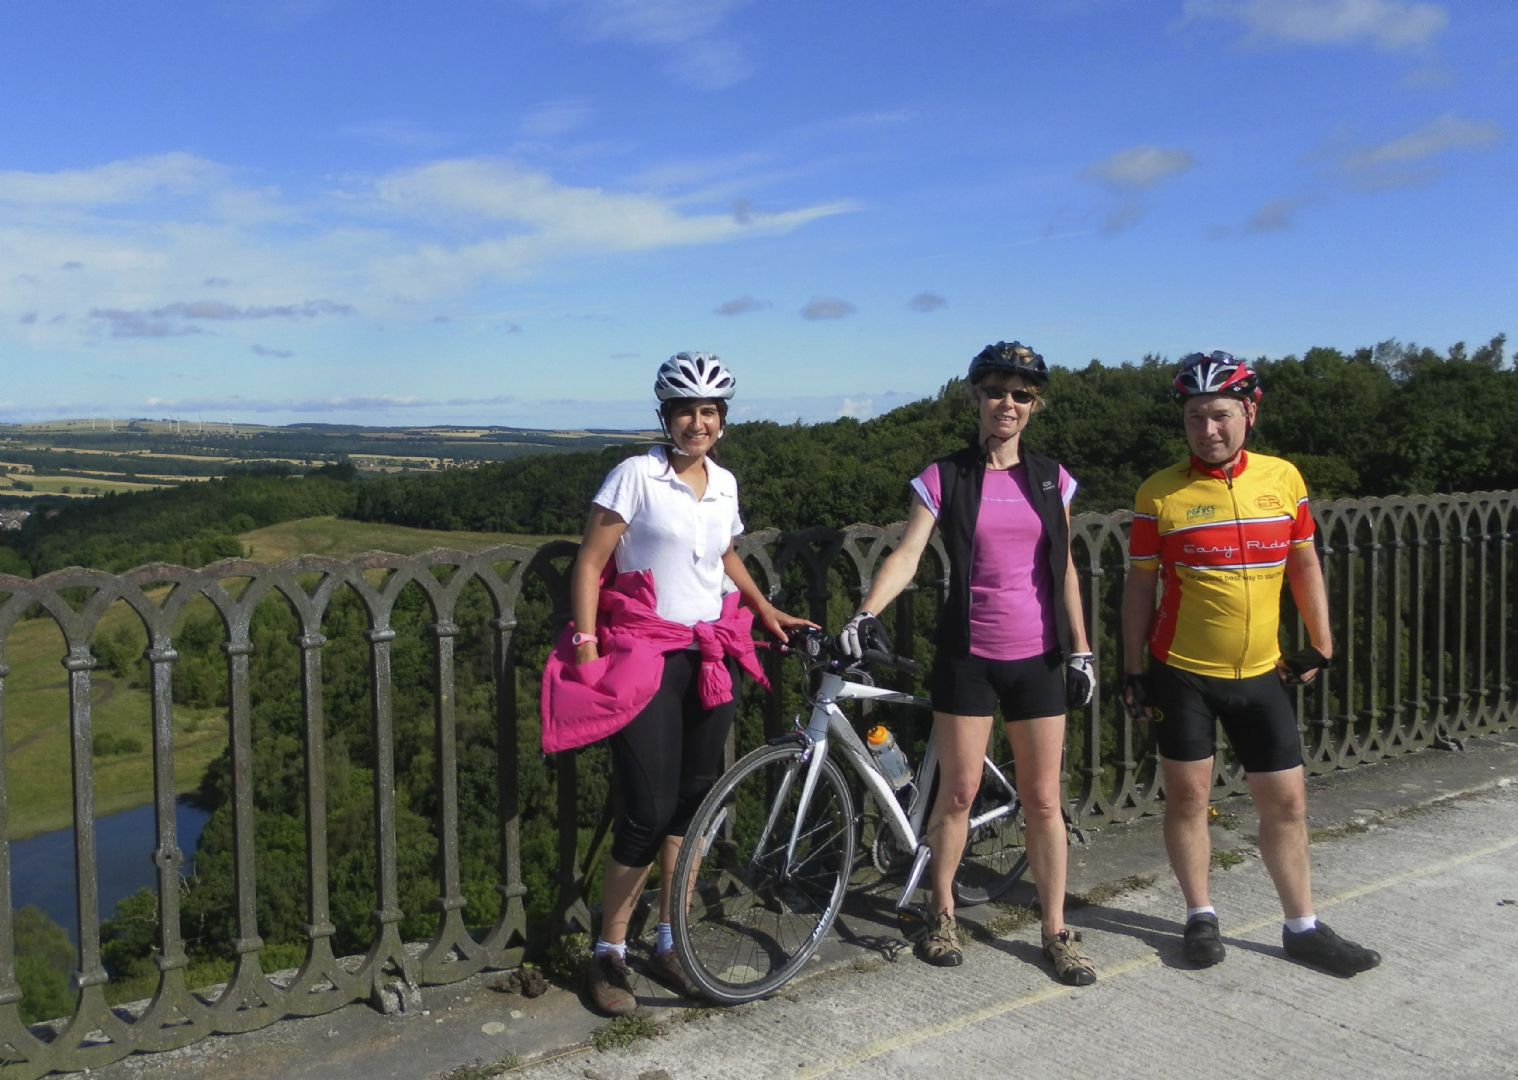 _Staff.223.7578.jpg - UK - C2C - Coast to Coast 2 Days Cycling - Self-Guided Road Cycling Holiday - Road Cycling